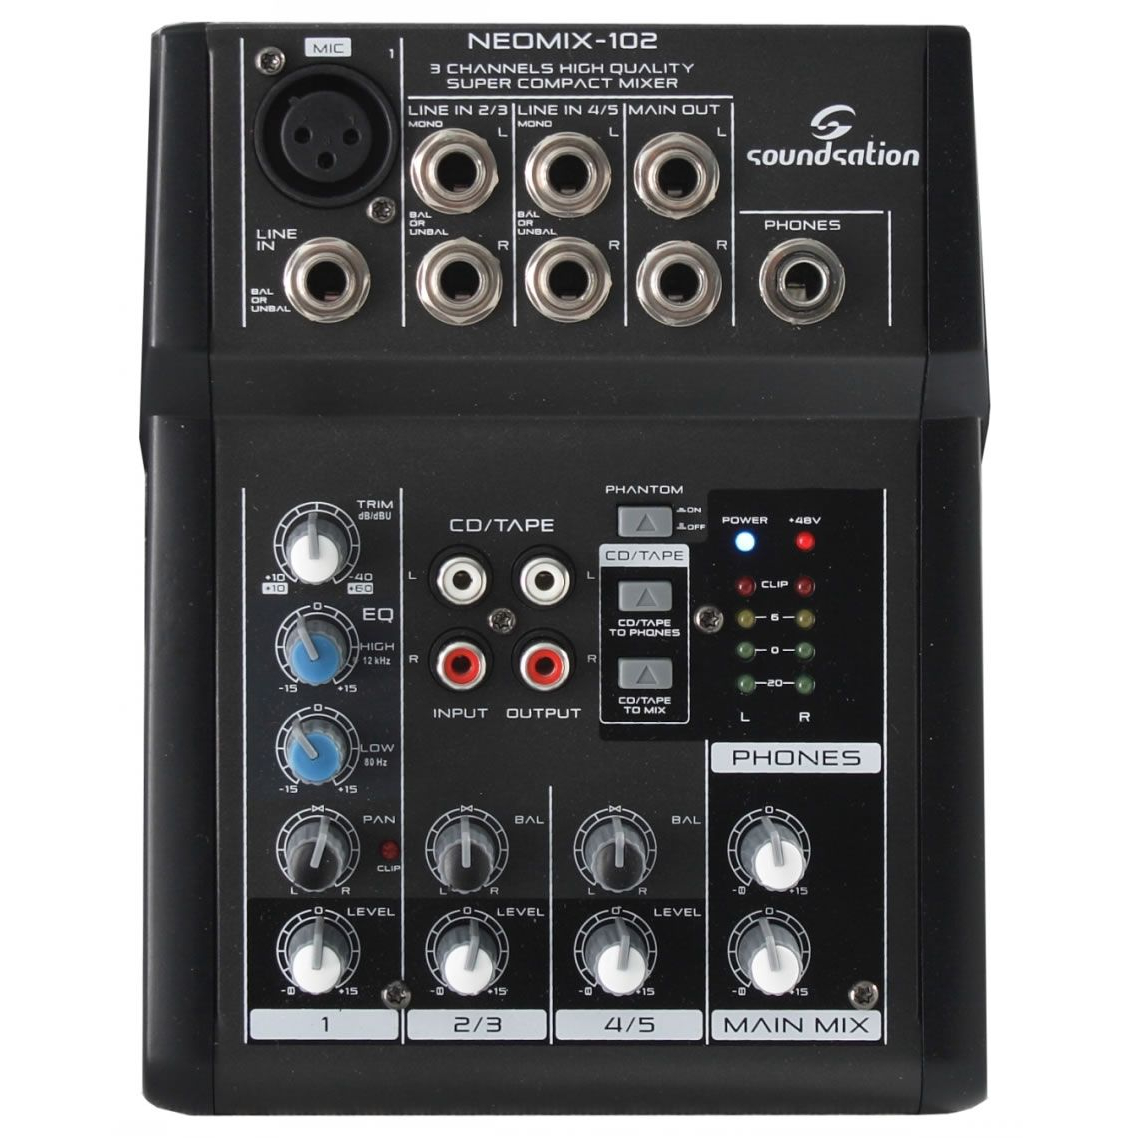 SOUNDSATION NEOMIX 102 MIXER A 3 CANALI